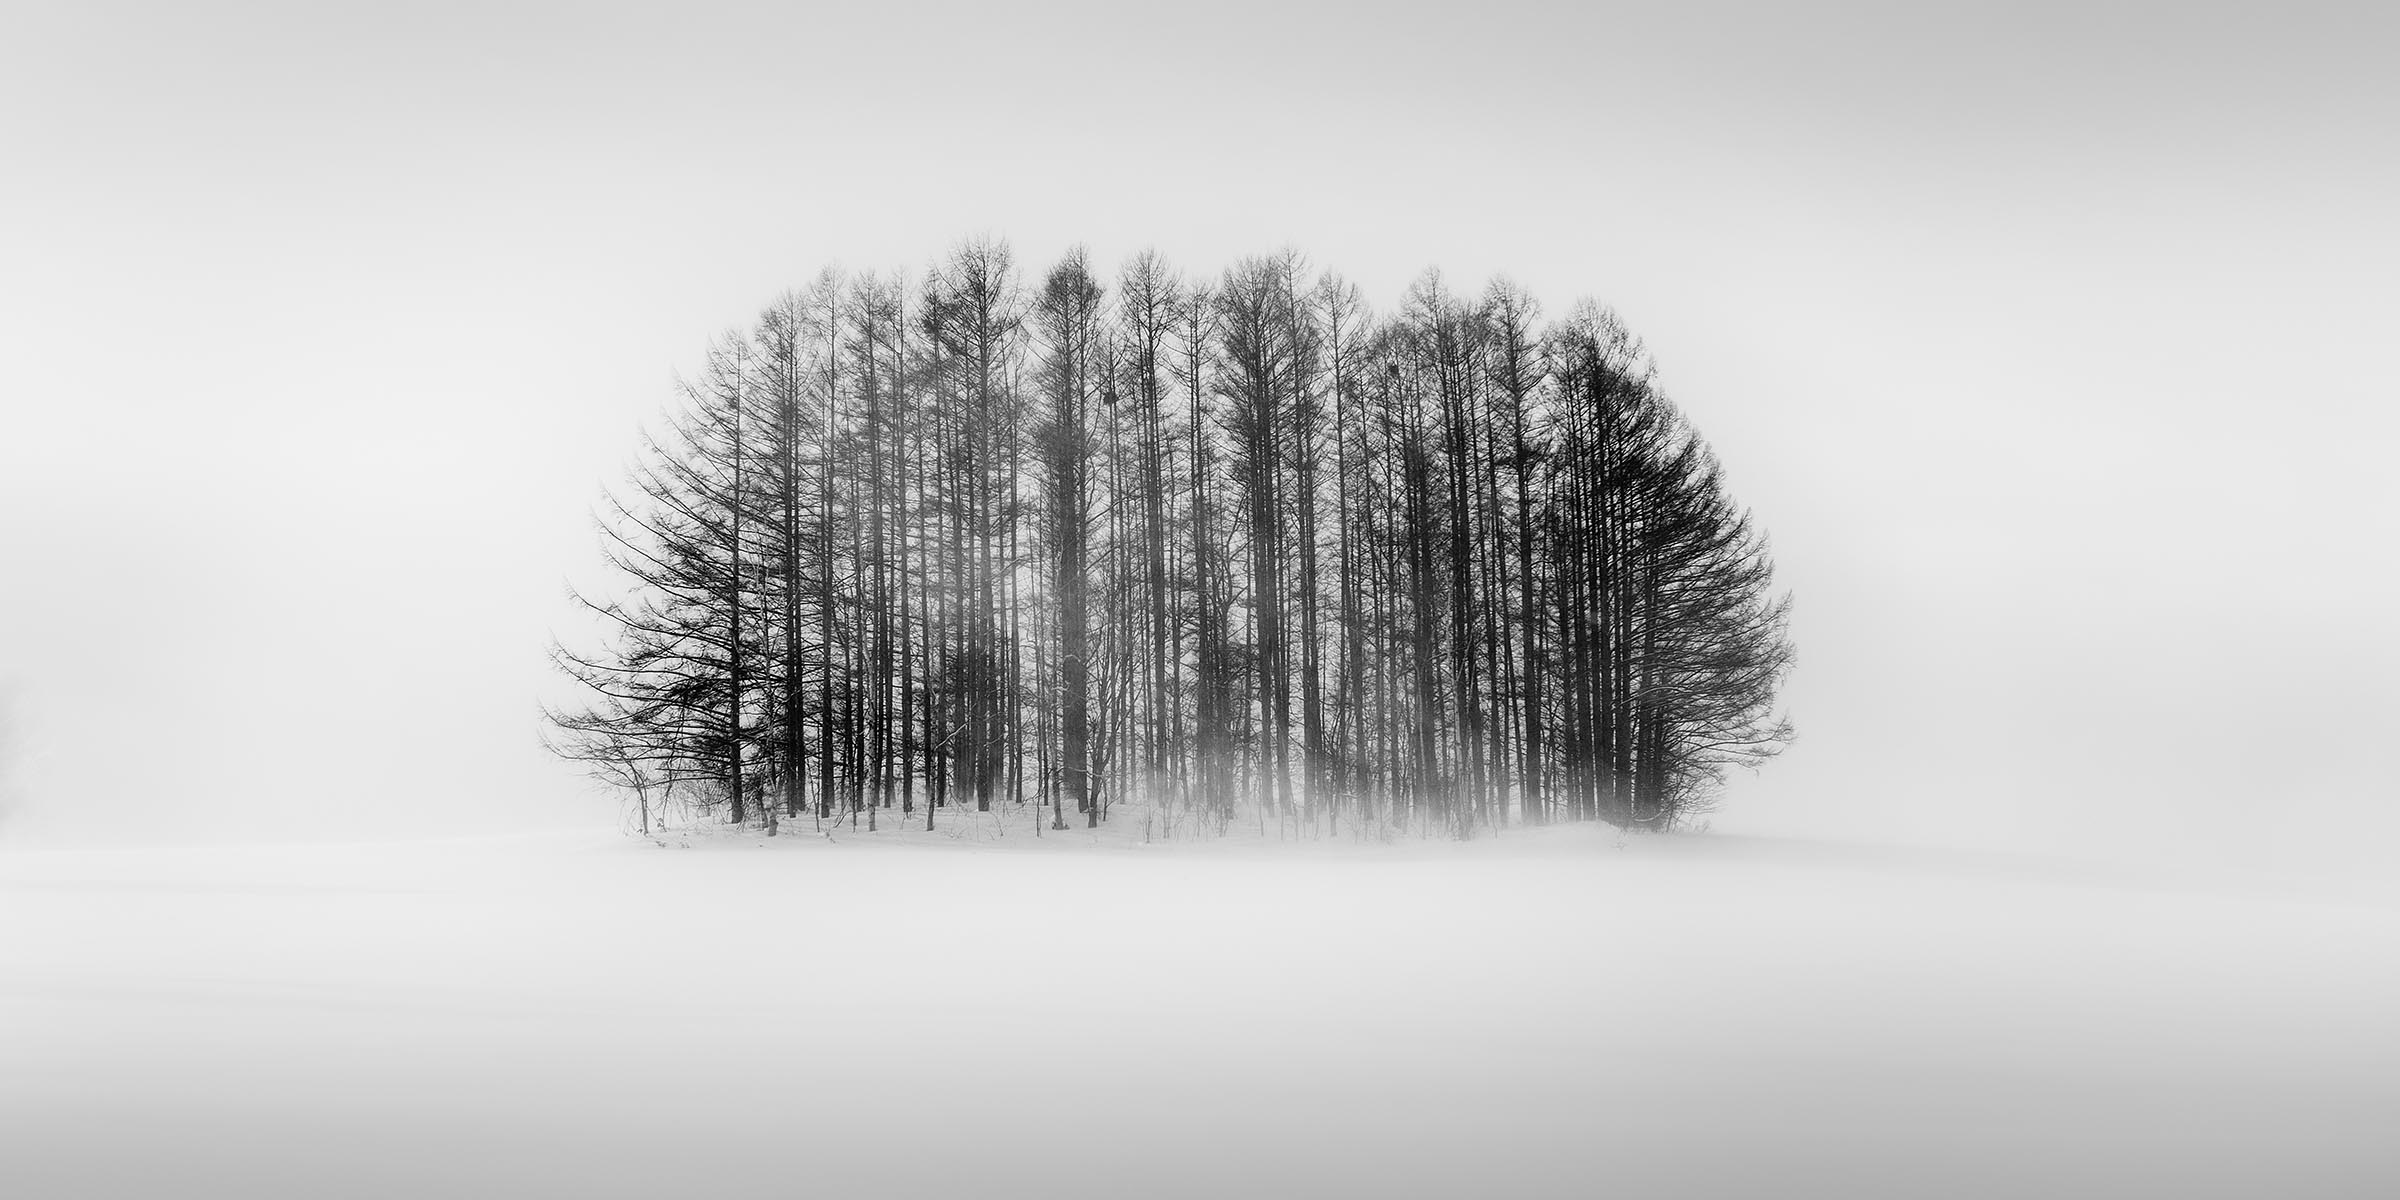 Photograph of Trees in Biei, Japan by Brent Goldman Photography